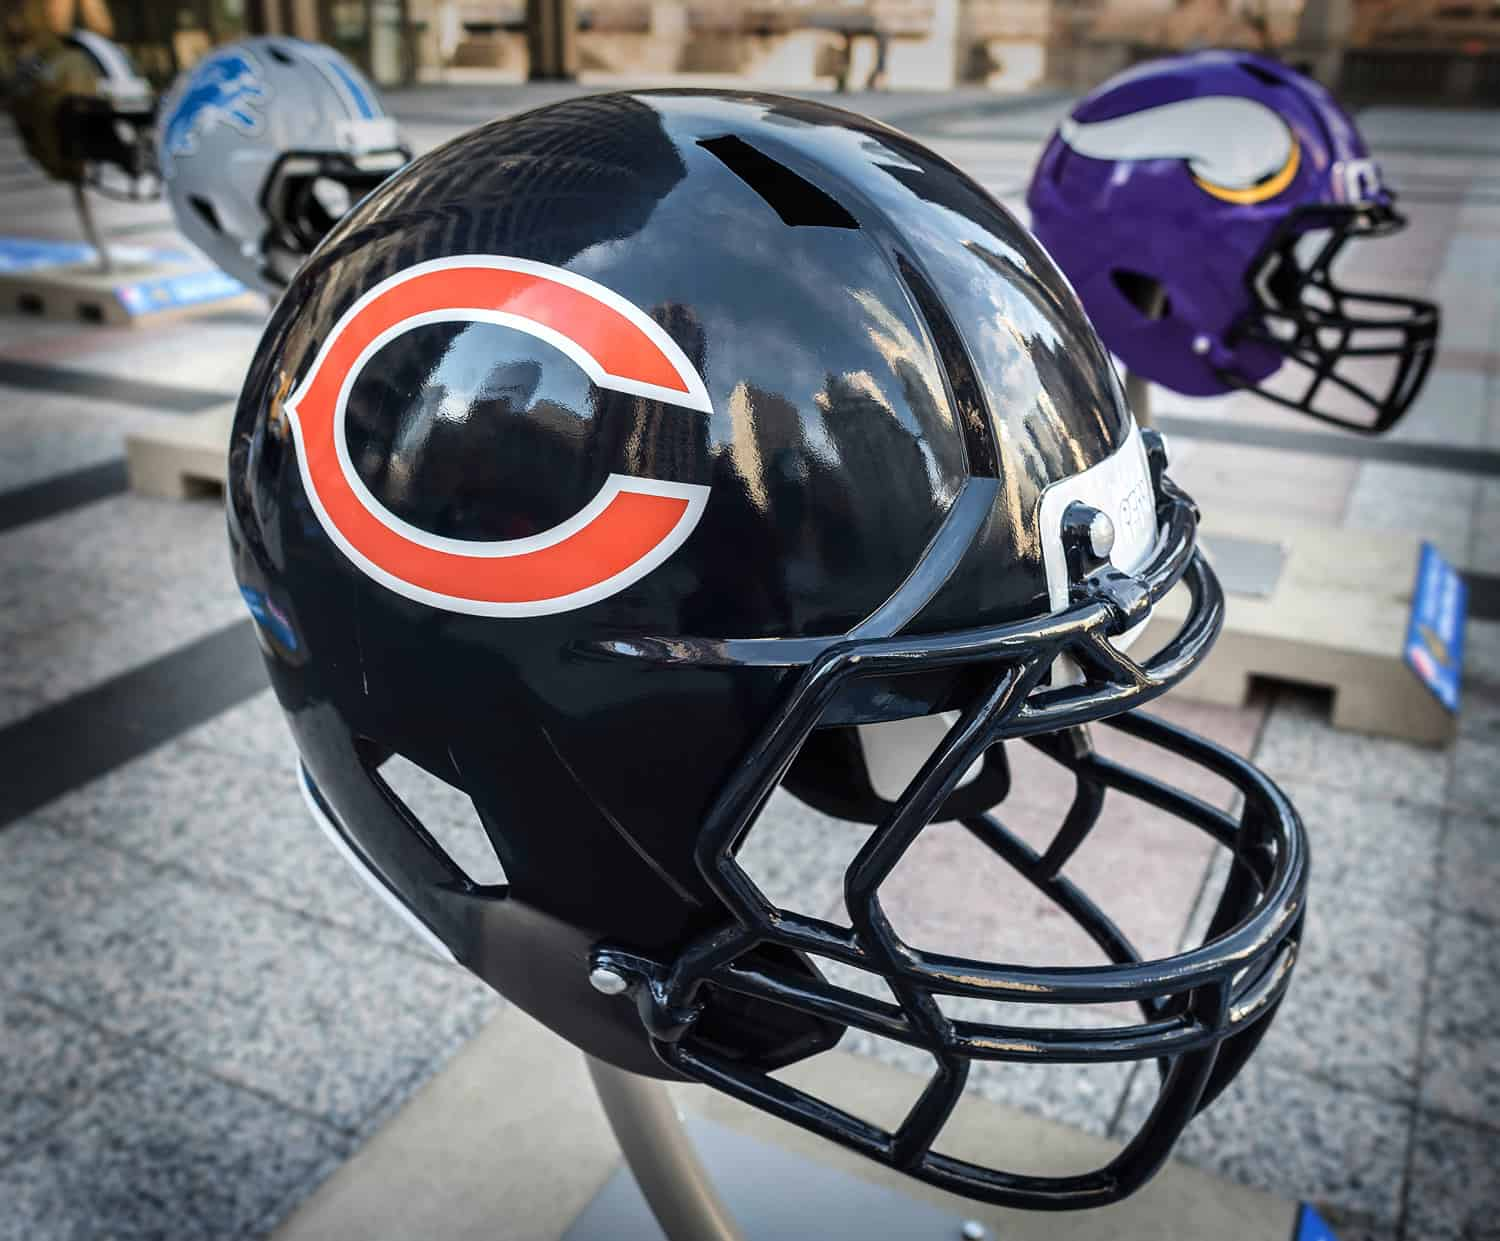 Big helmets in downtown Chicago, getting ready for the NFL draft.